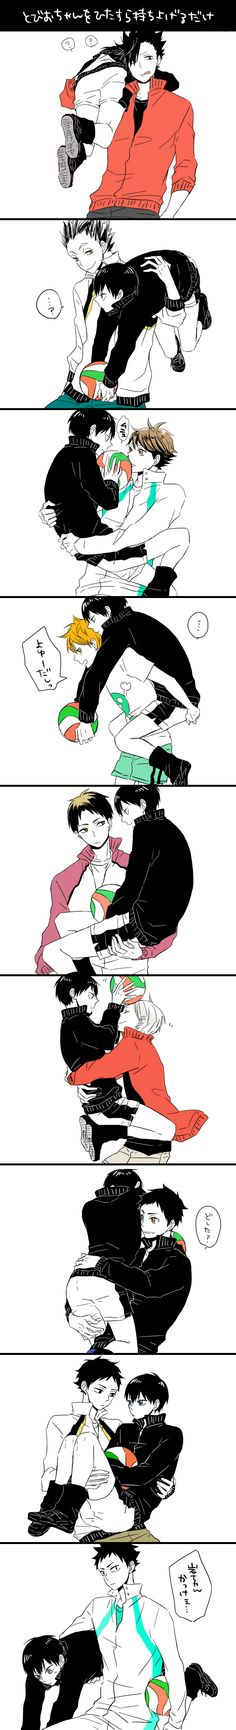 I swear Kags is so uke he has to be carried by Hinata